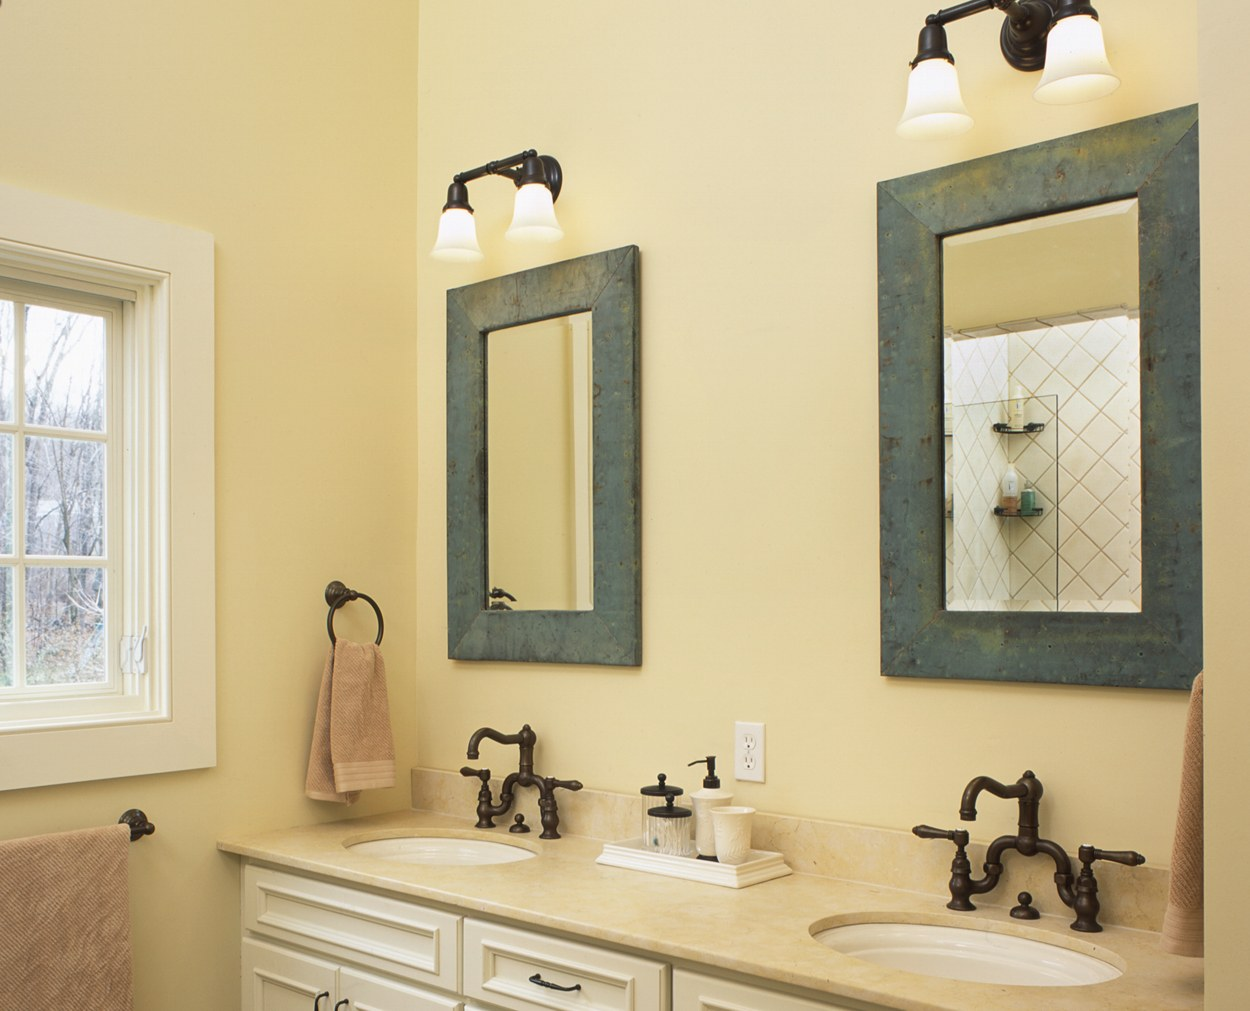 Framed mirrors with Cesearstone counters in this Wilton CT master bath.